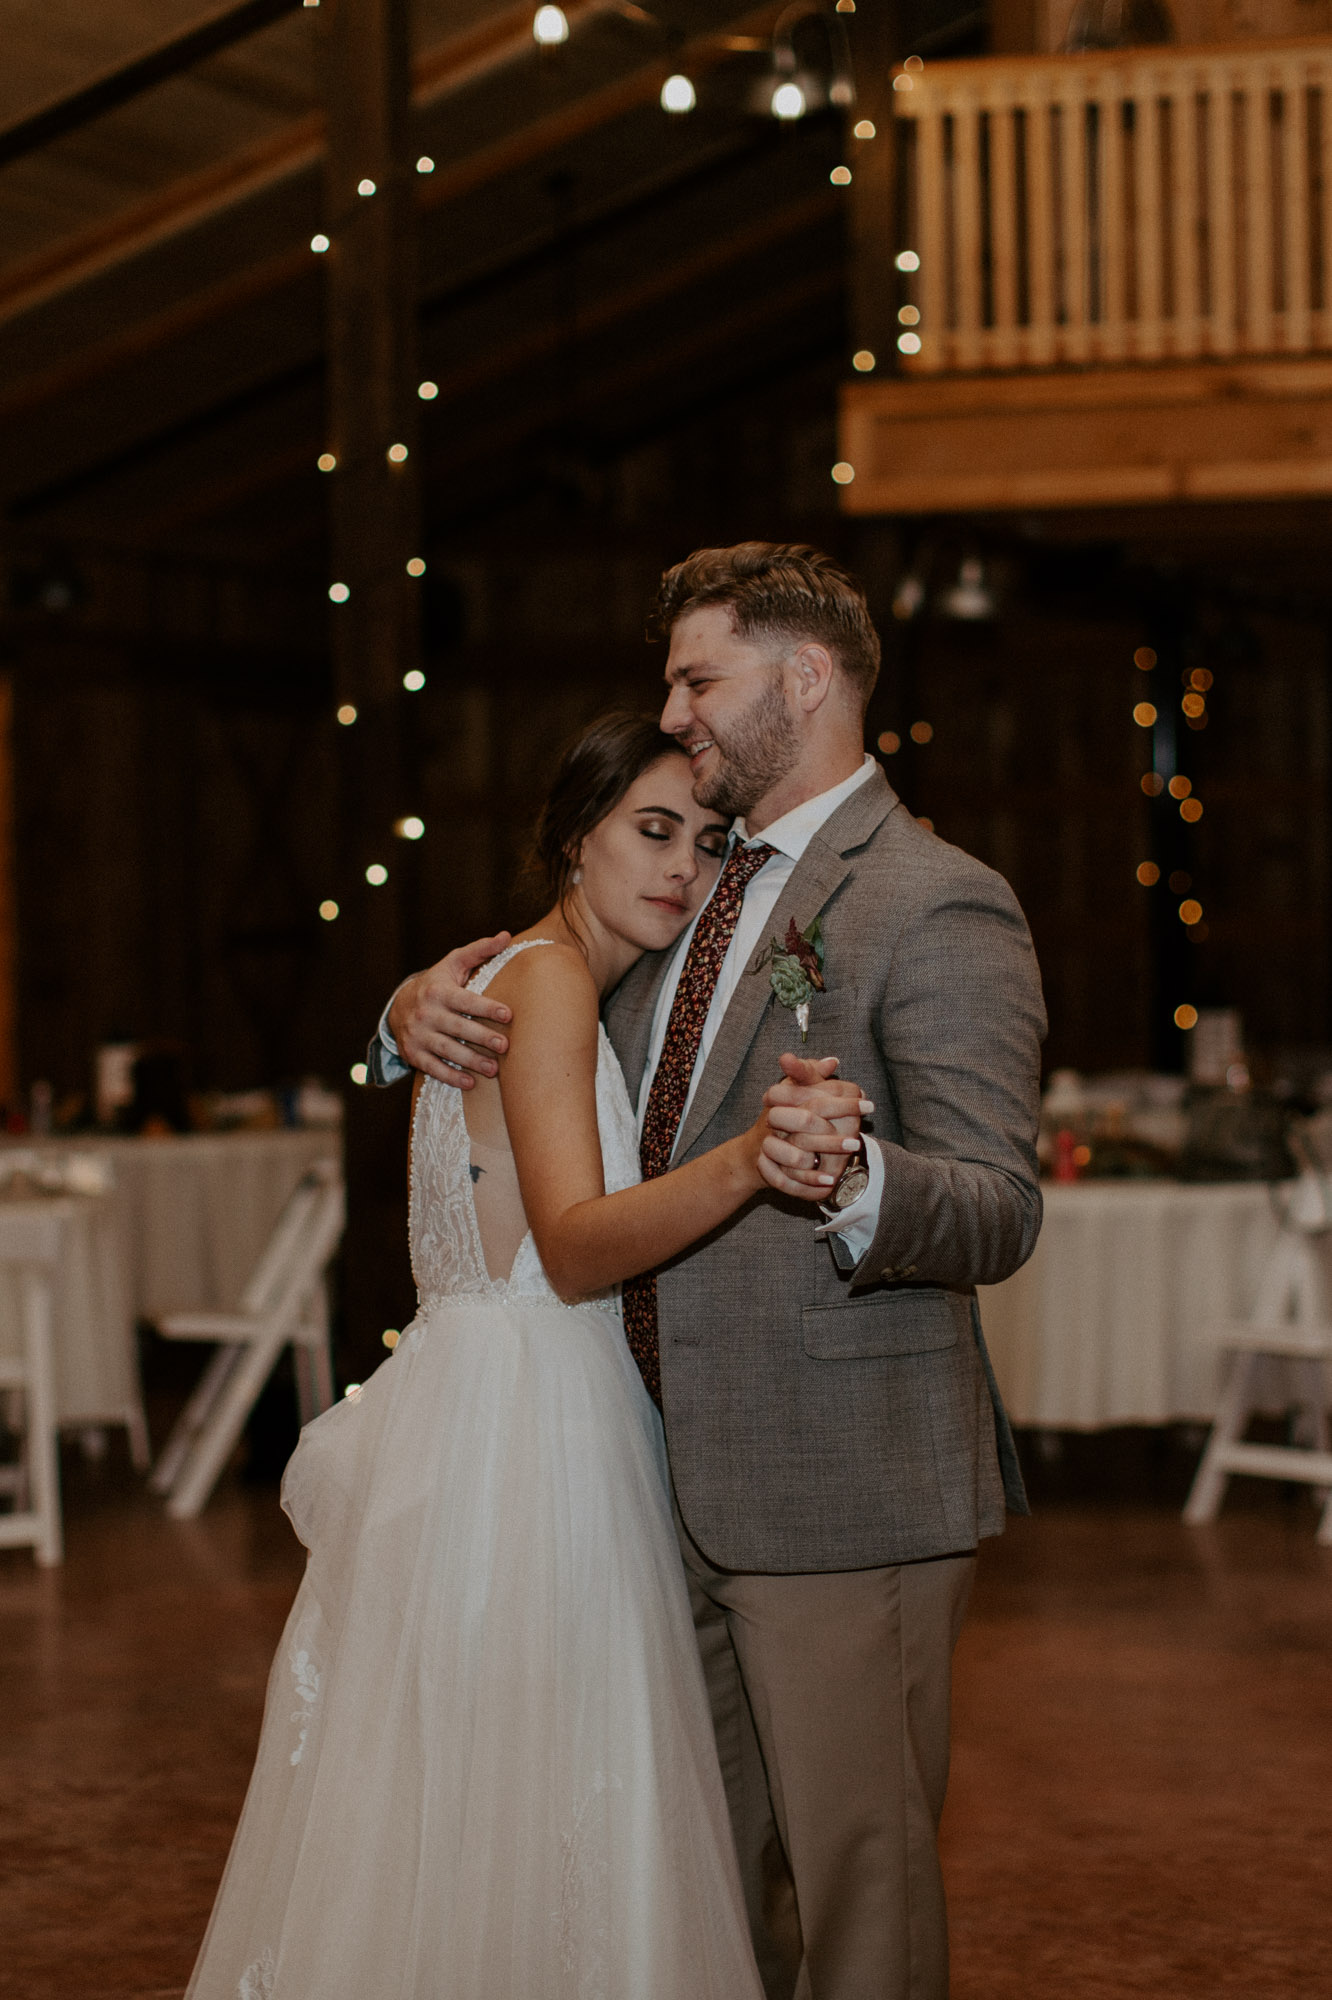 Bride and groom share a last dance on their wedding day